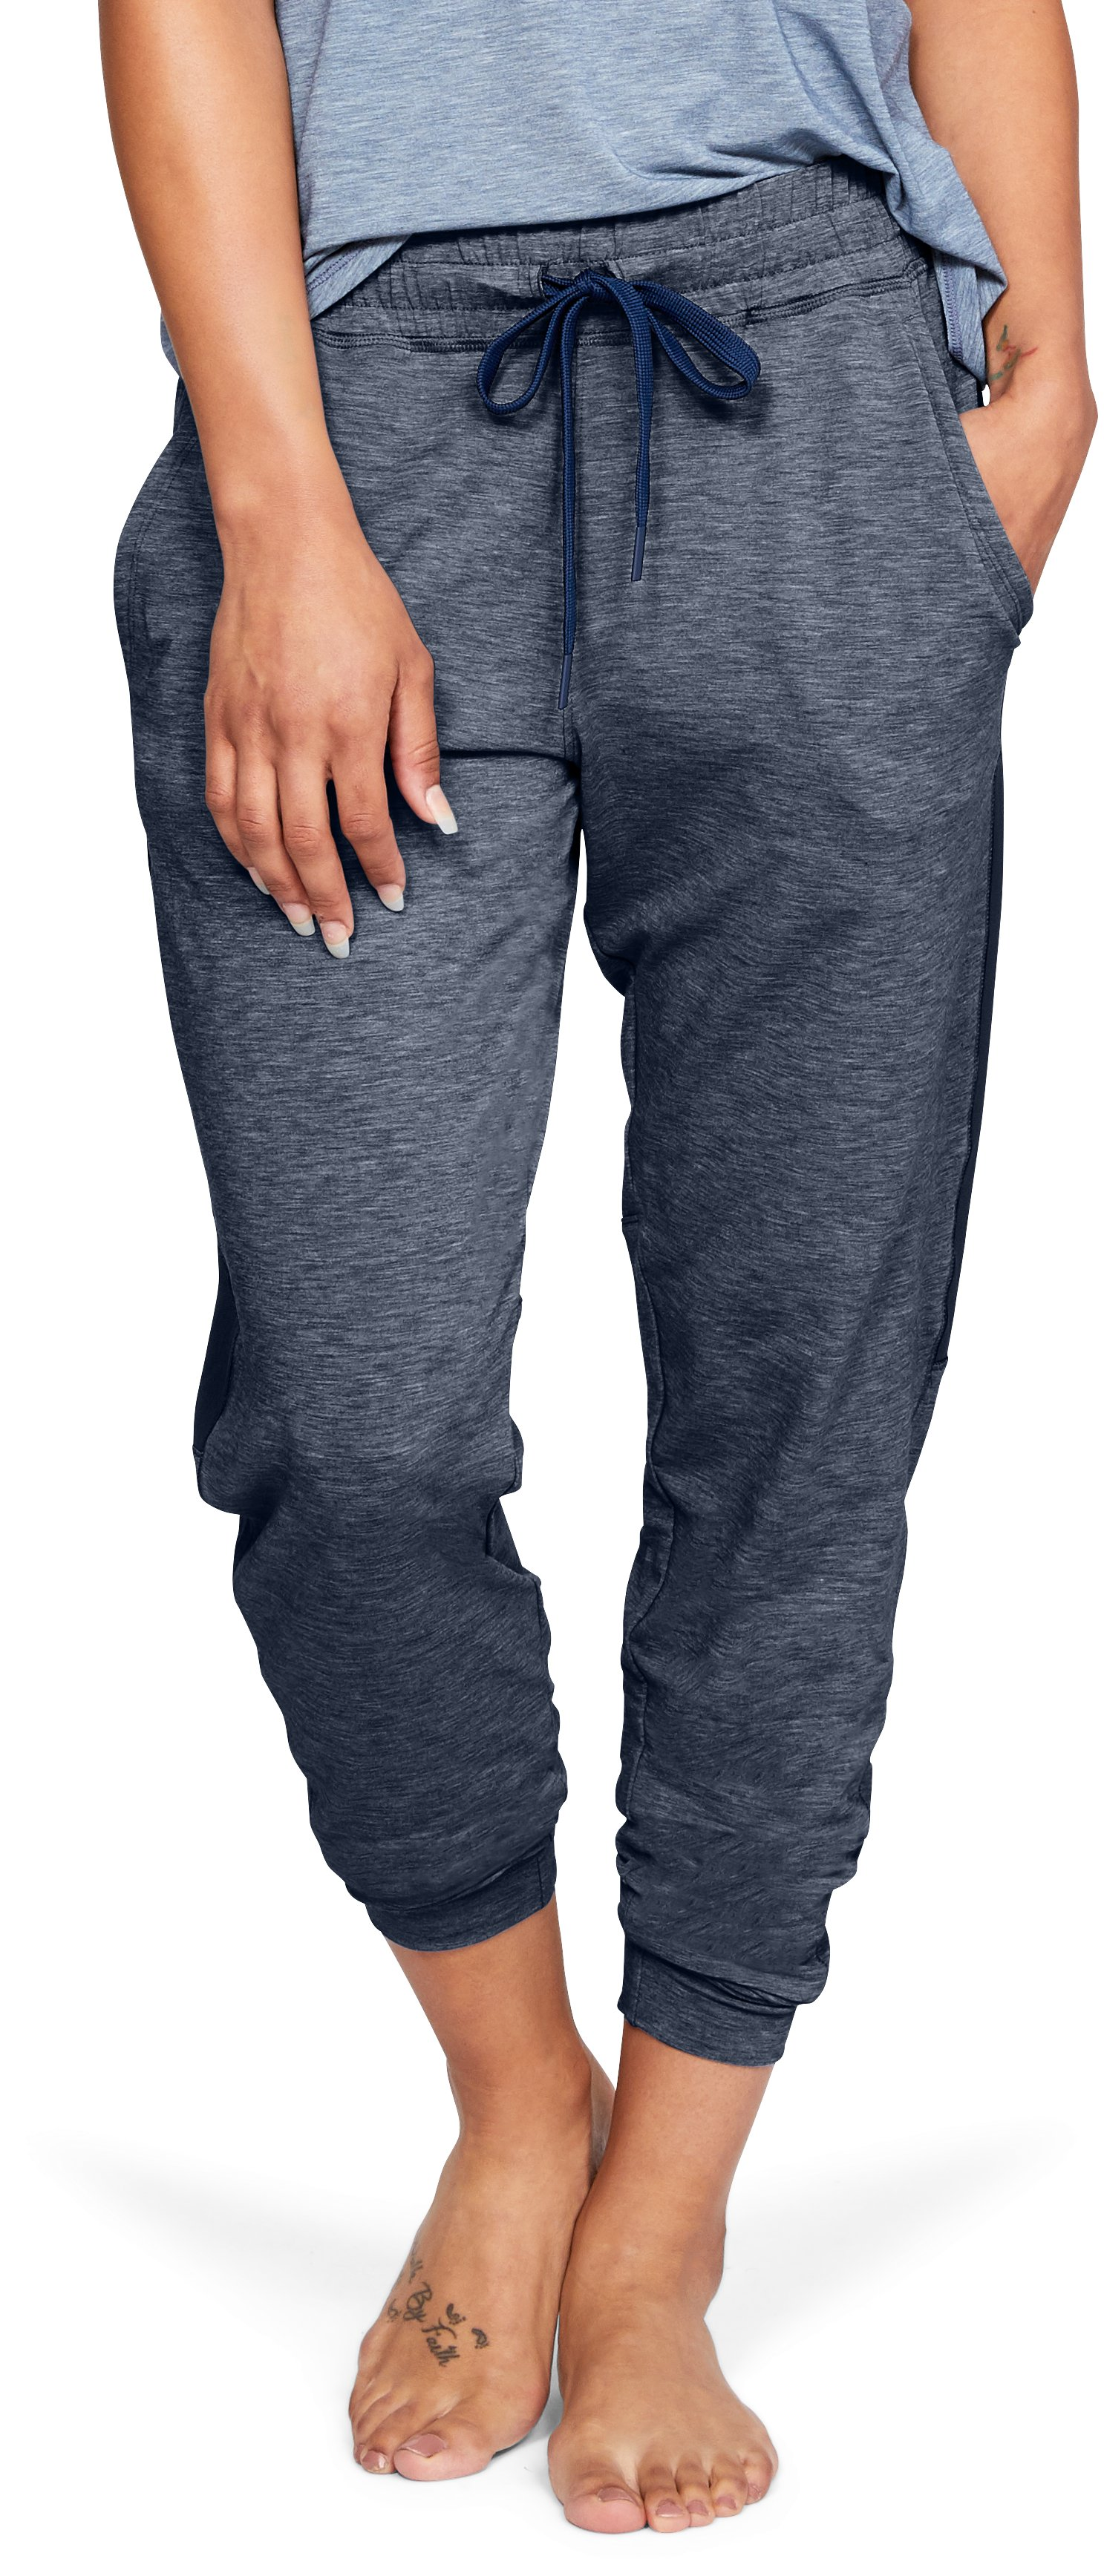 Women's Athlete Recovery Sleepwear™ Joggers, Academy Fade Heather, zoomed